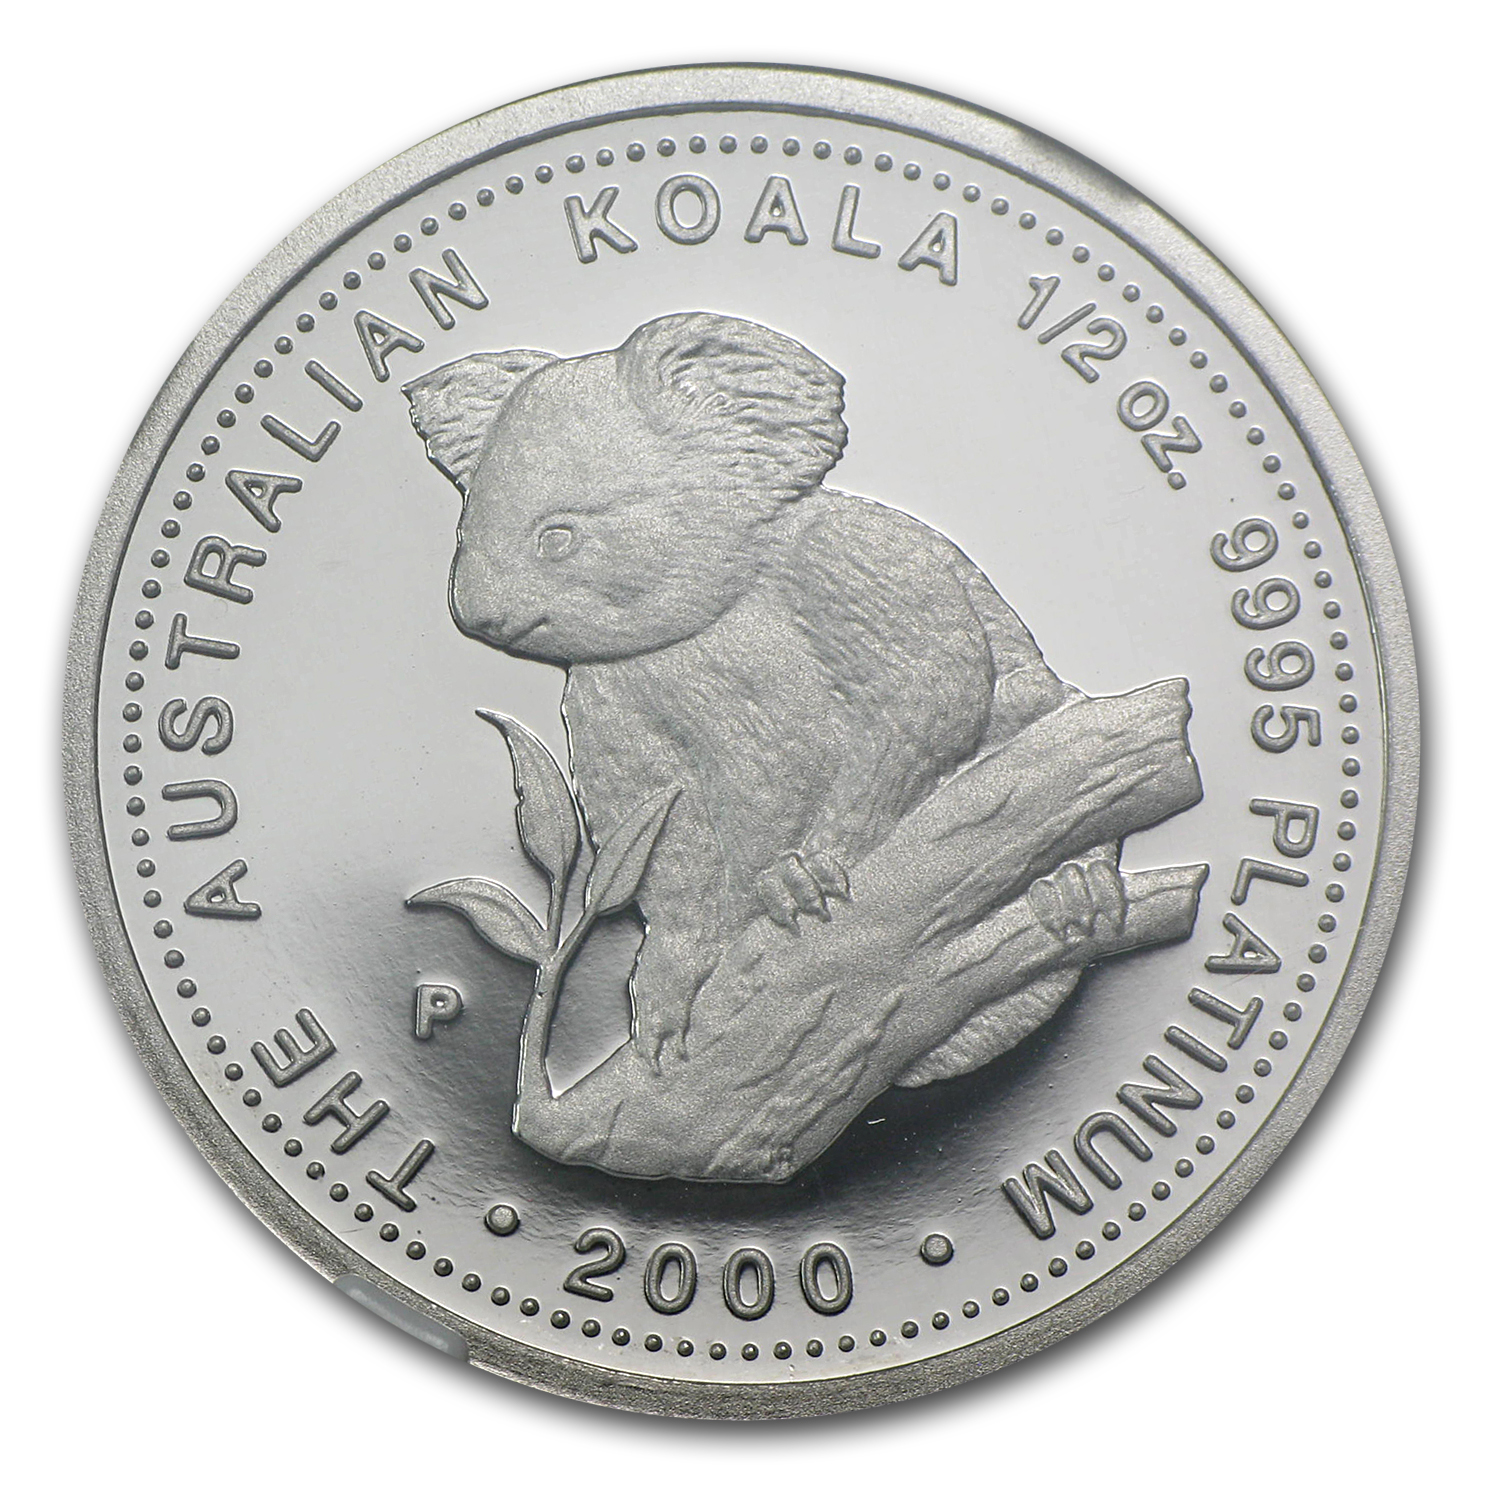 2000 Australia 1/2 oz Proof Platinum Koala PF-69 NGC